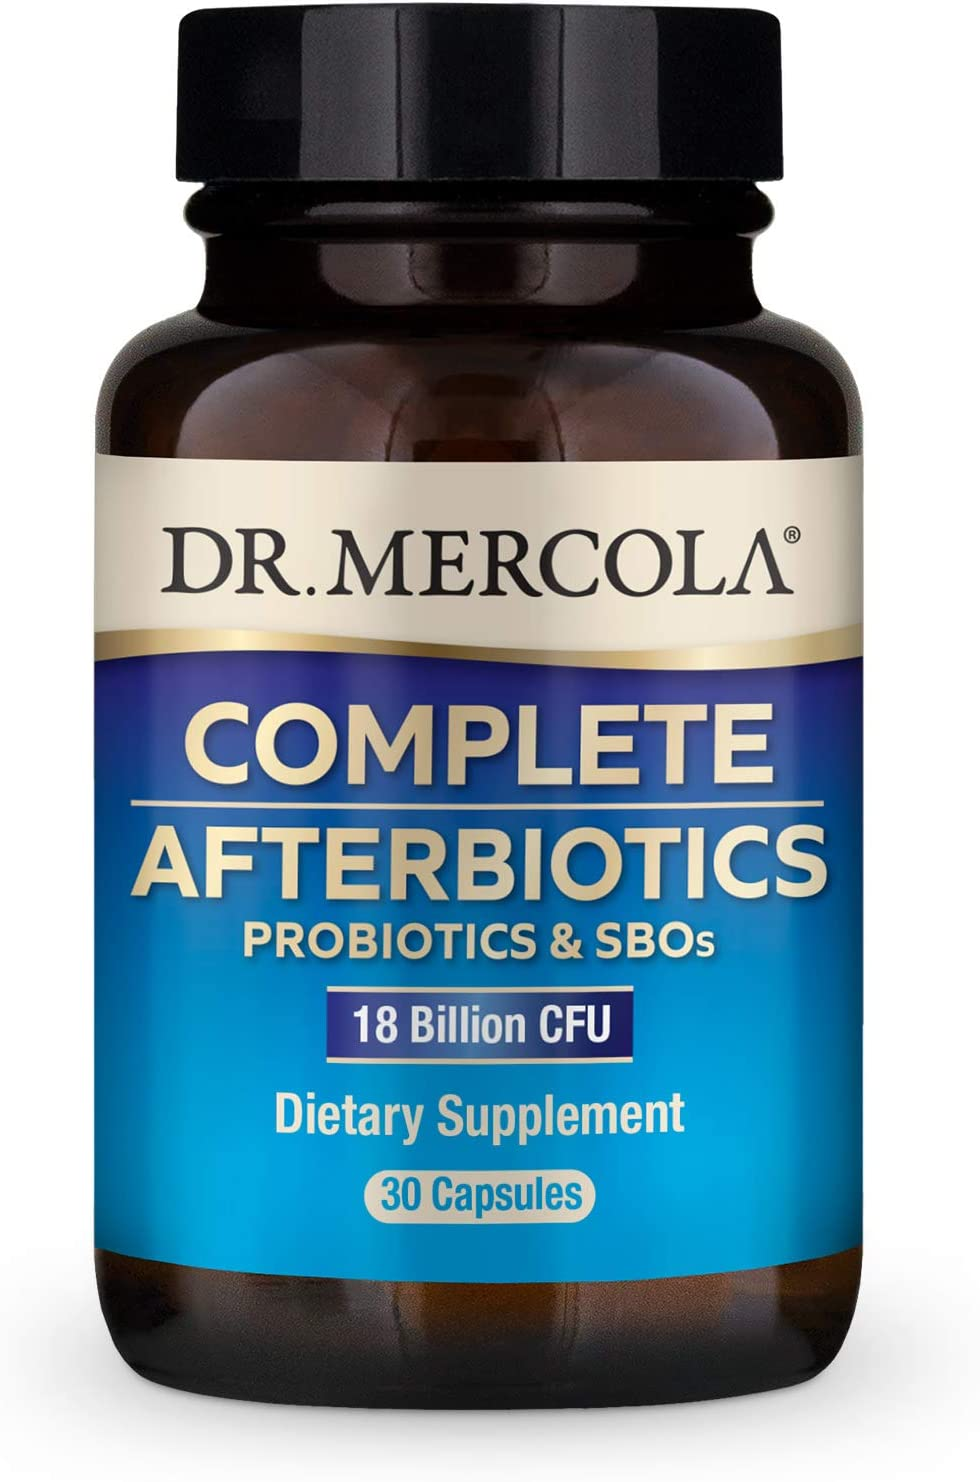 Dr. Mercola Complete Afterbiotics Dietary Supplement (18 Billion CFU), 30 Capsules (30 Servings), Supports Gut Health*, Non GMO, Soy Free, Gluten Free